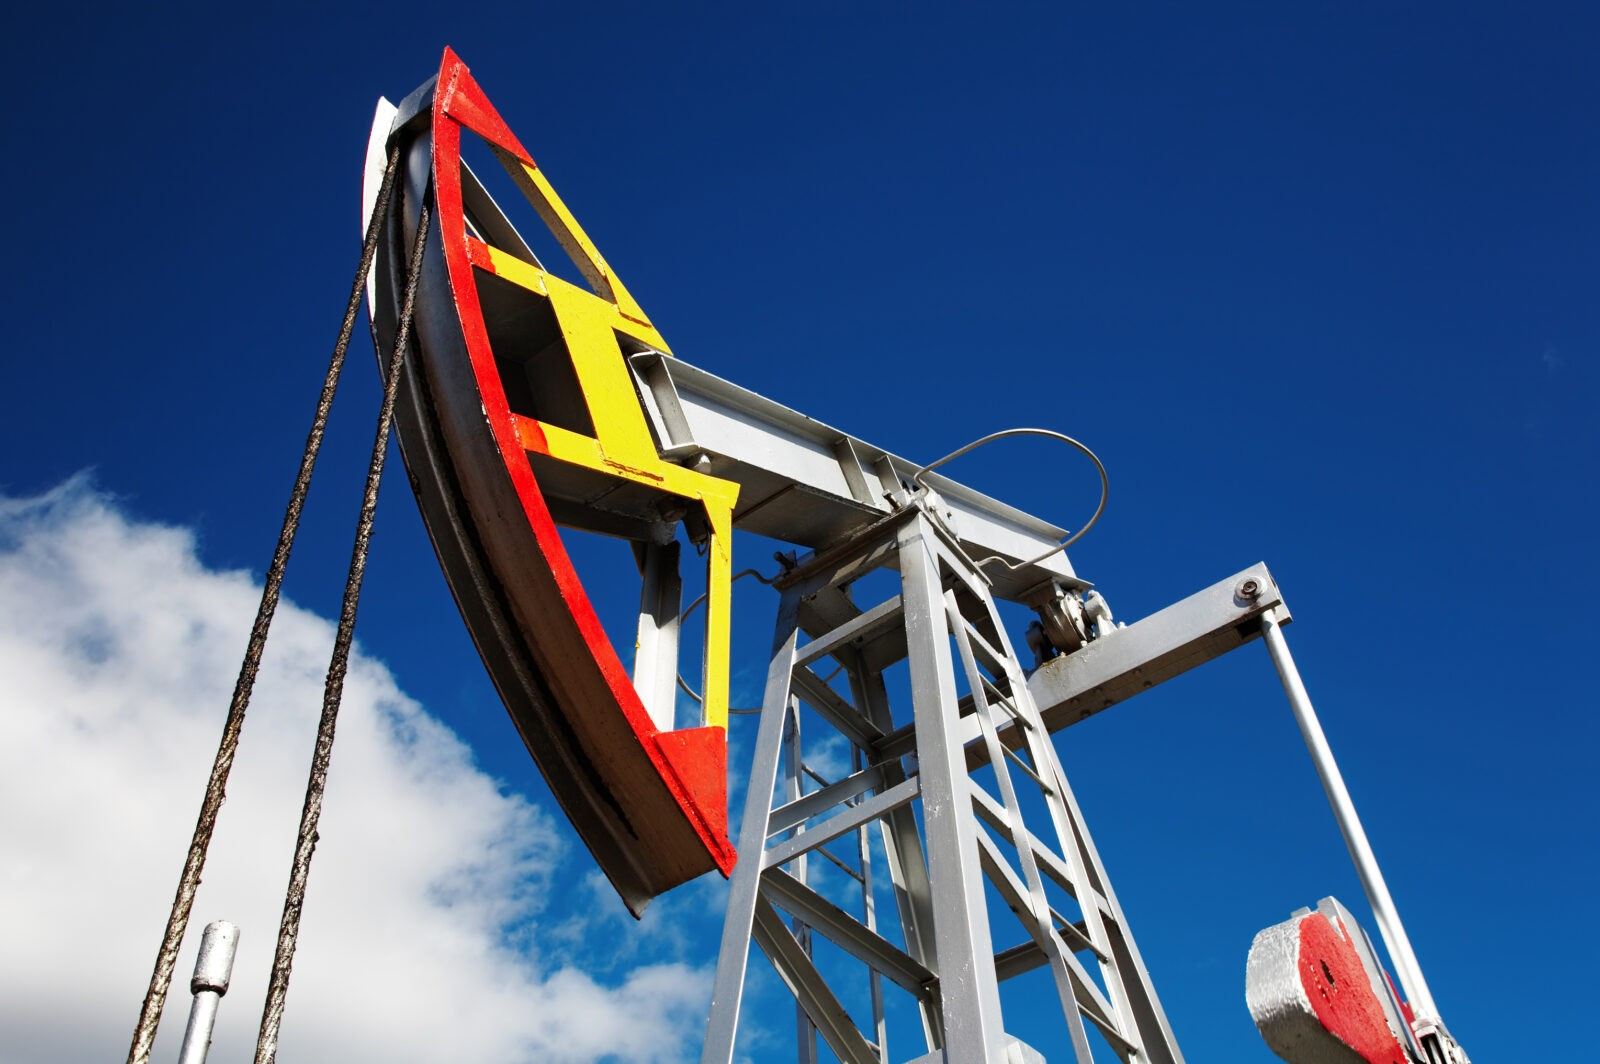 Oil pump jack against blue sky background